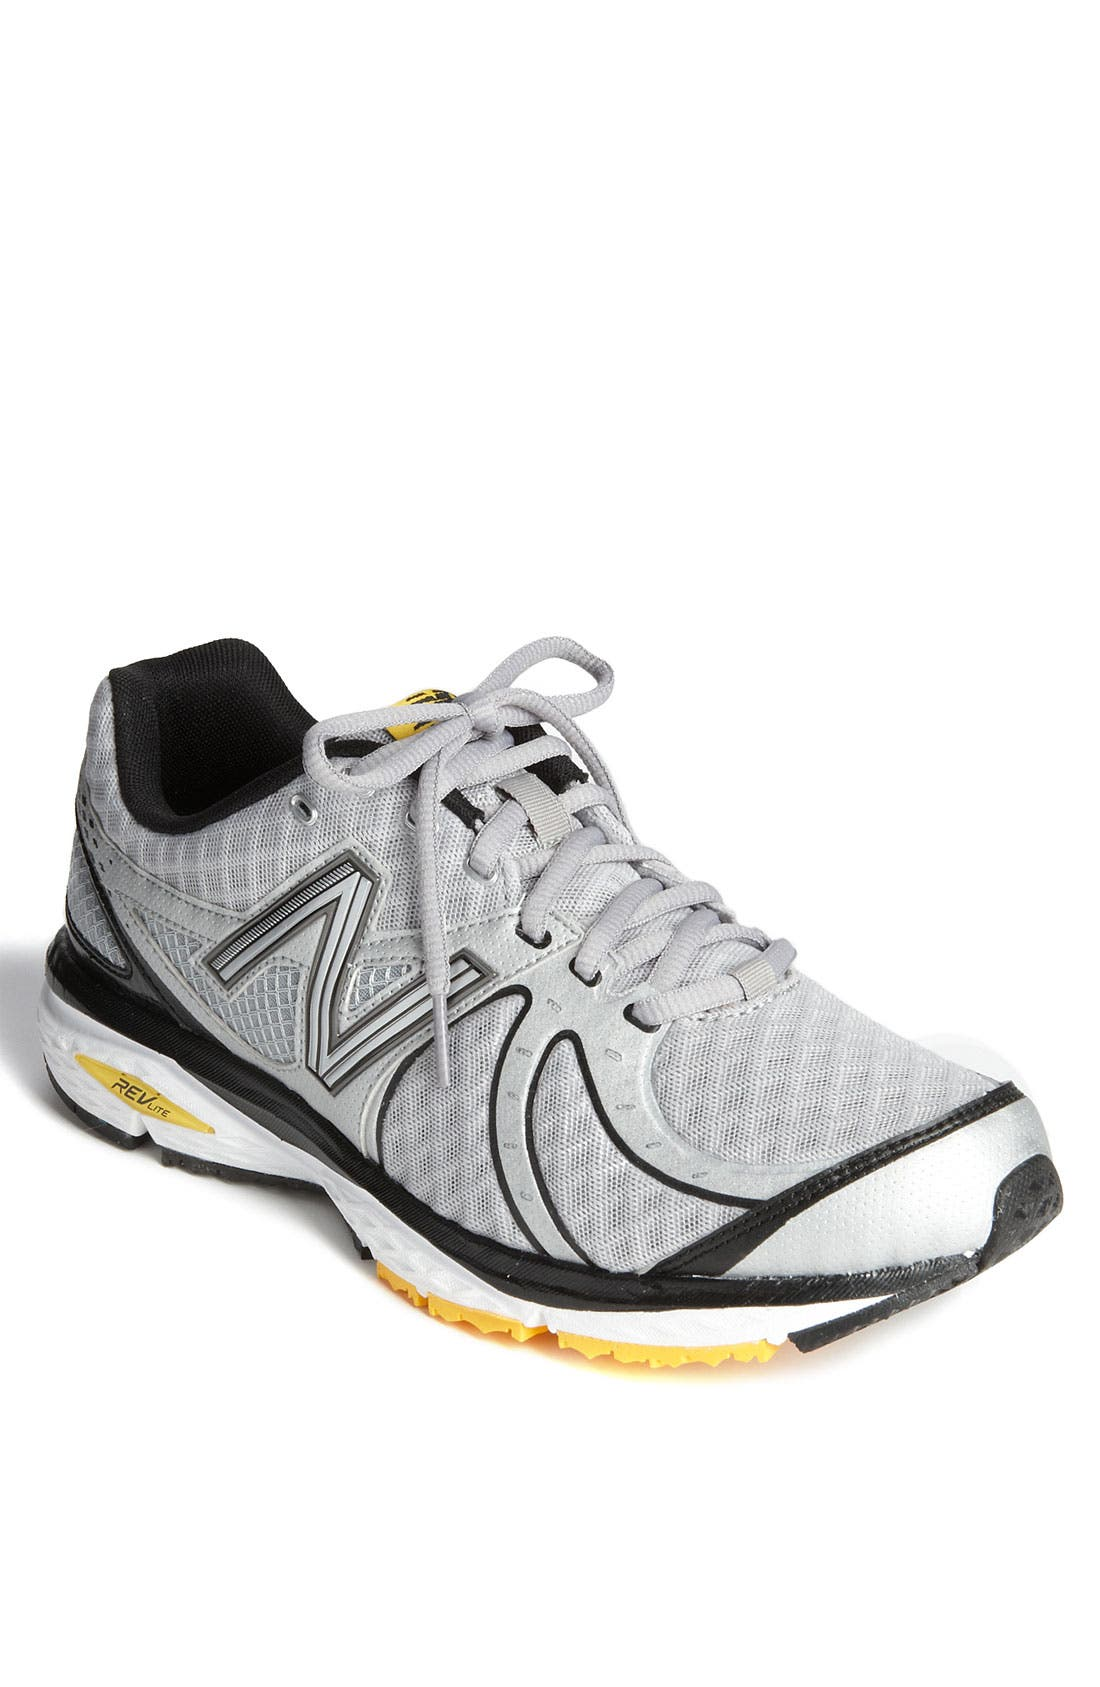 Main Image - New Balance '790' Running Shoe (Men)